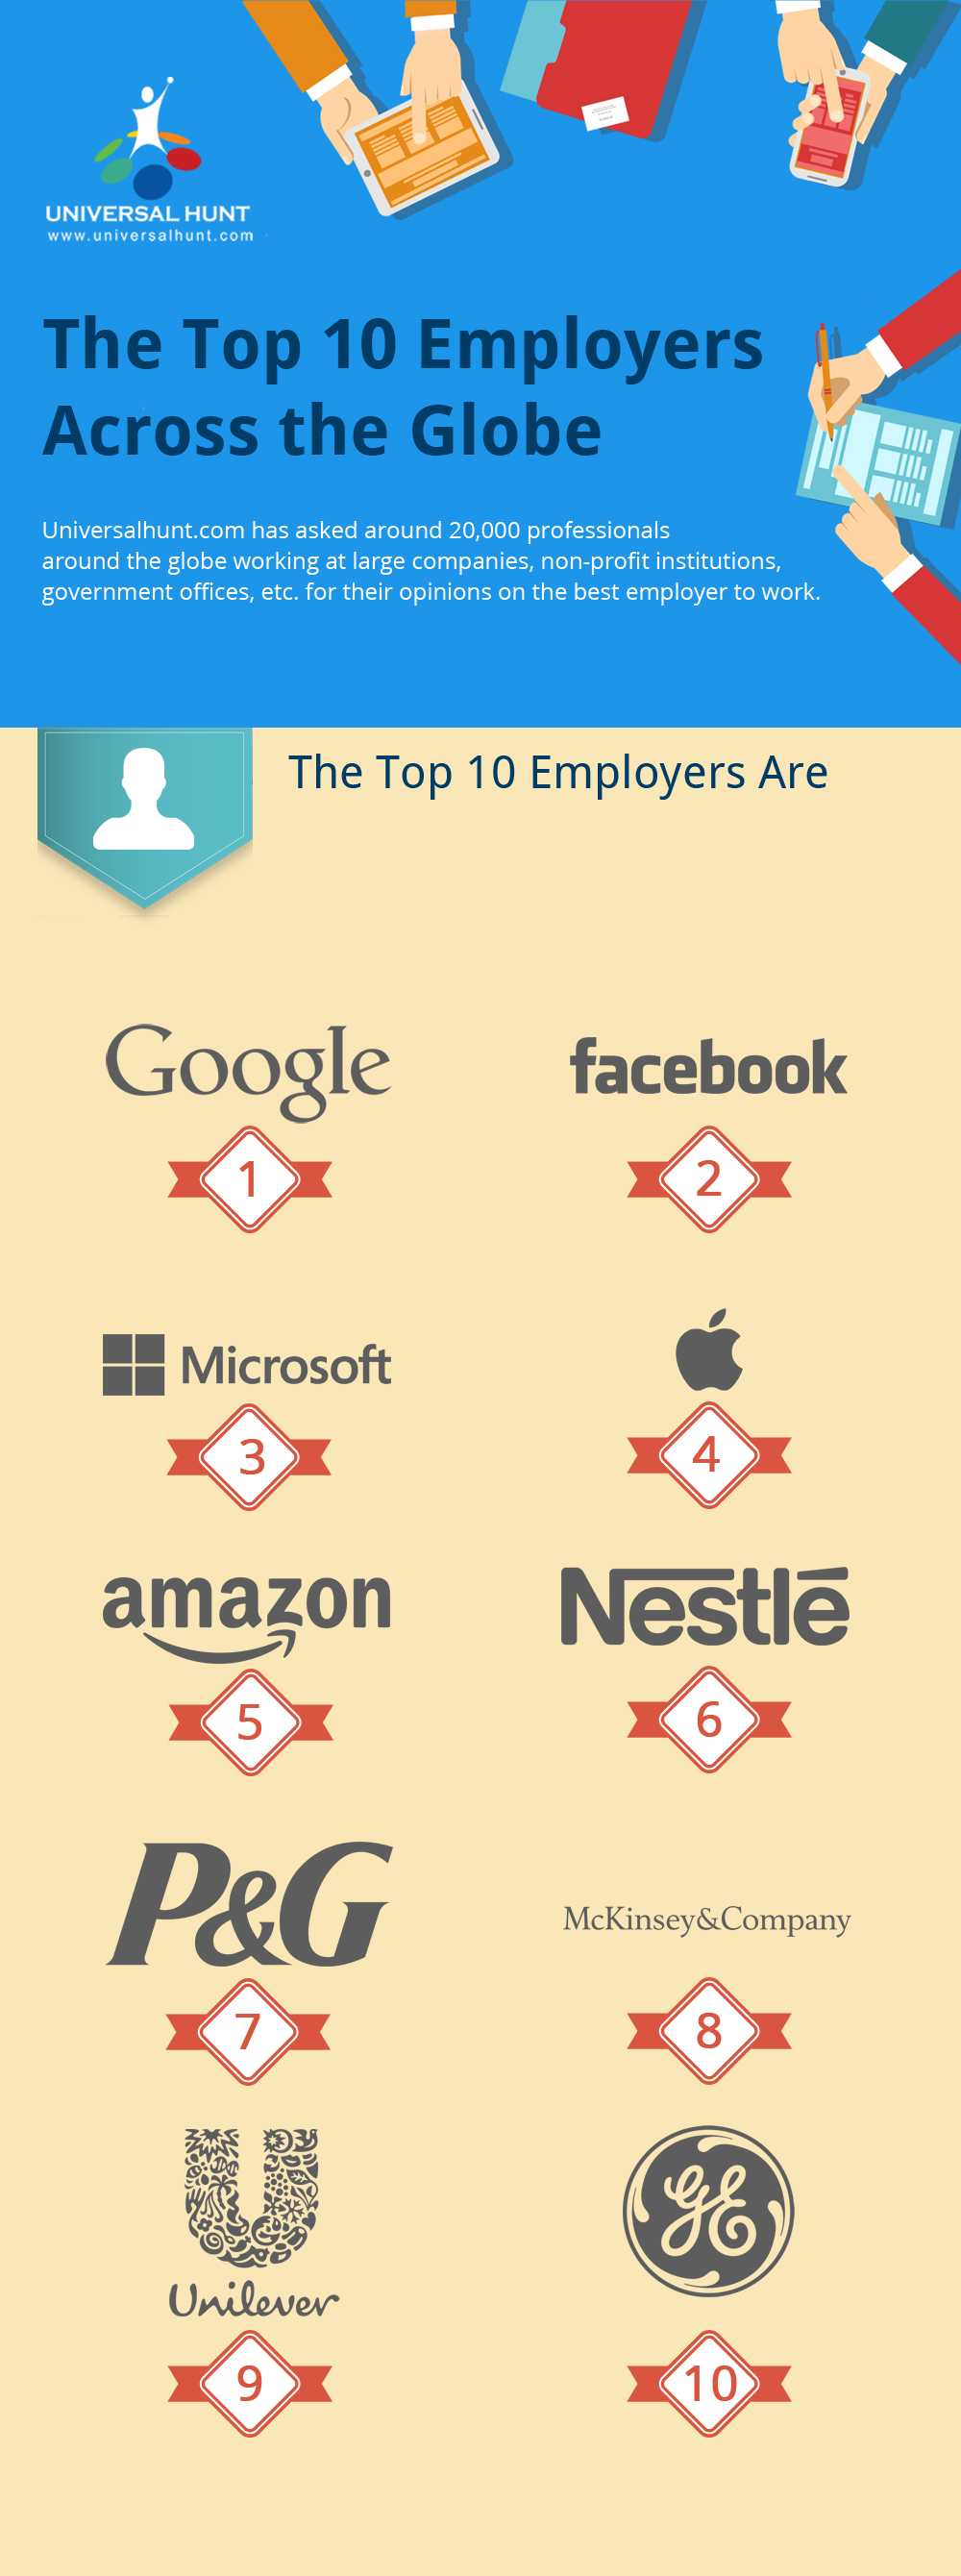 uh vector blog The Top 10 Companies to Work for